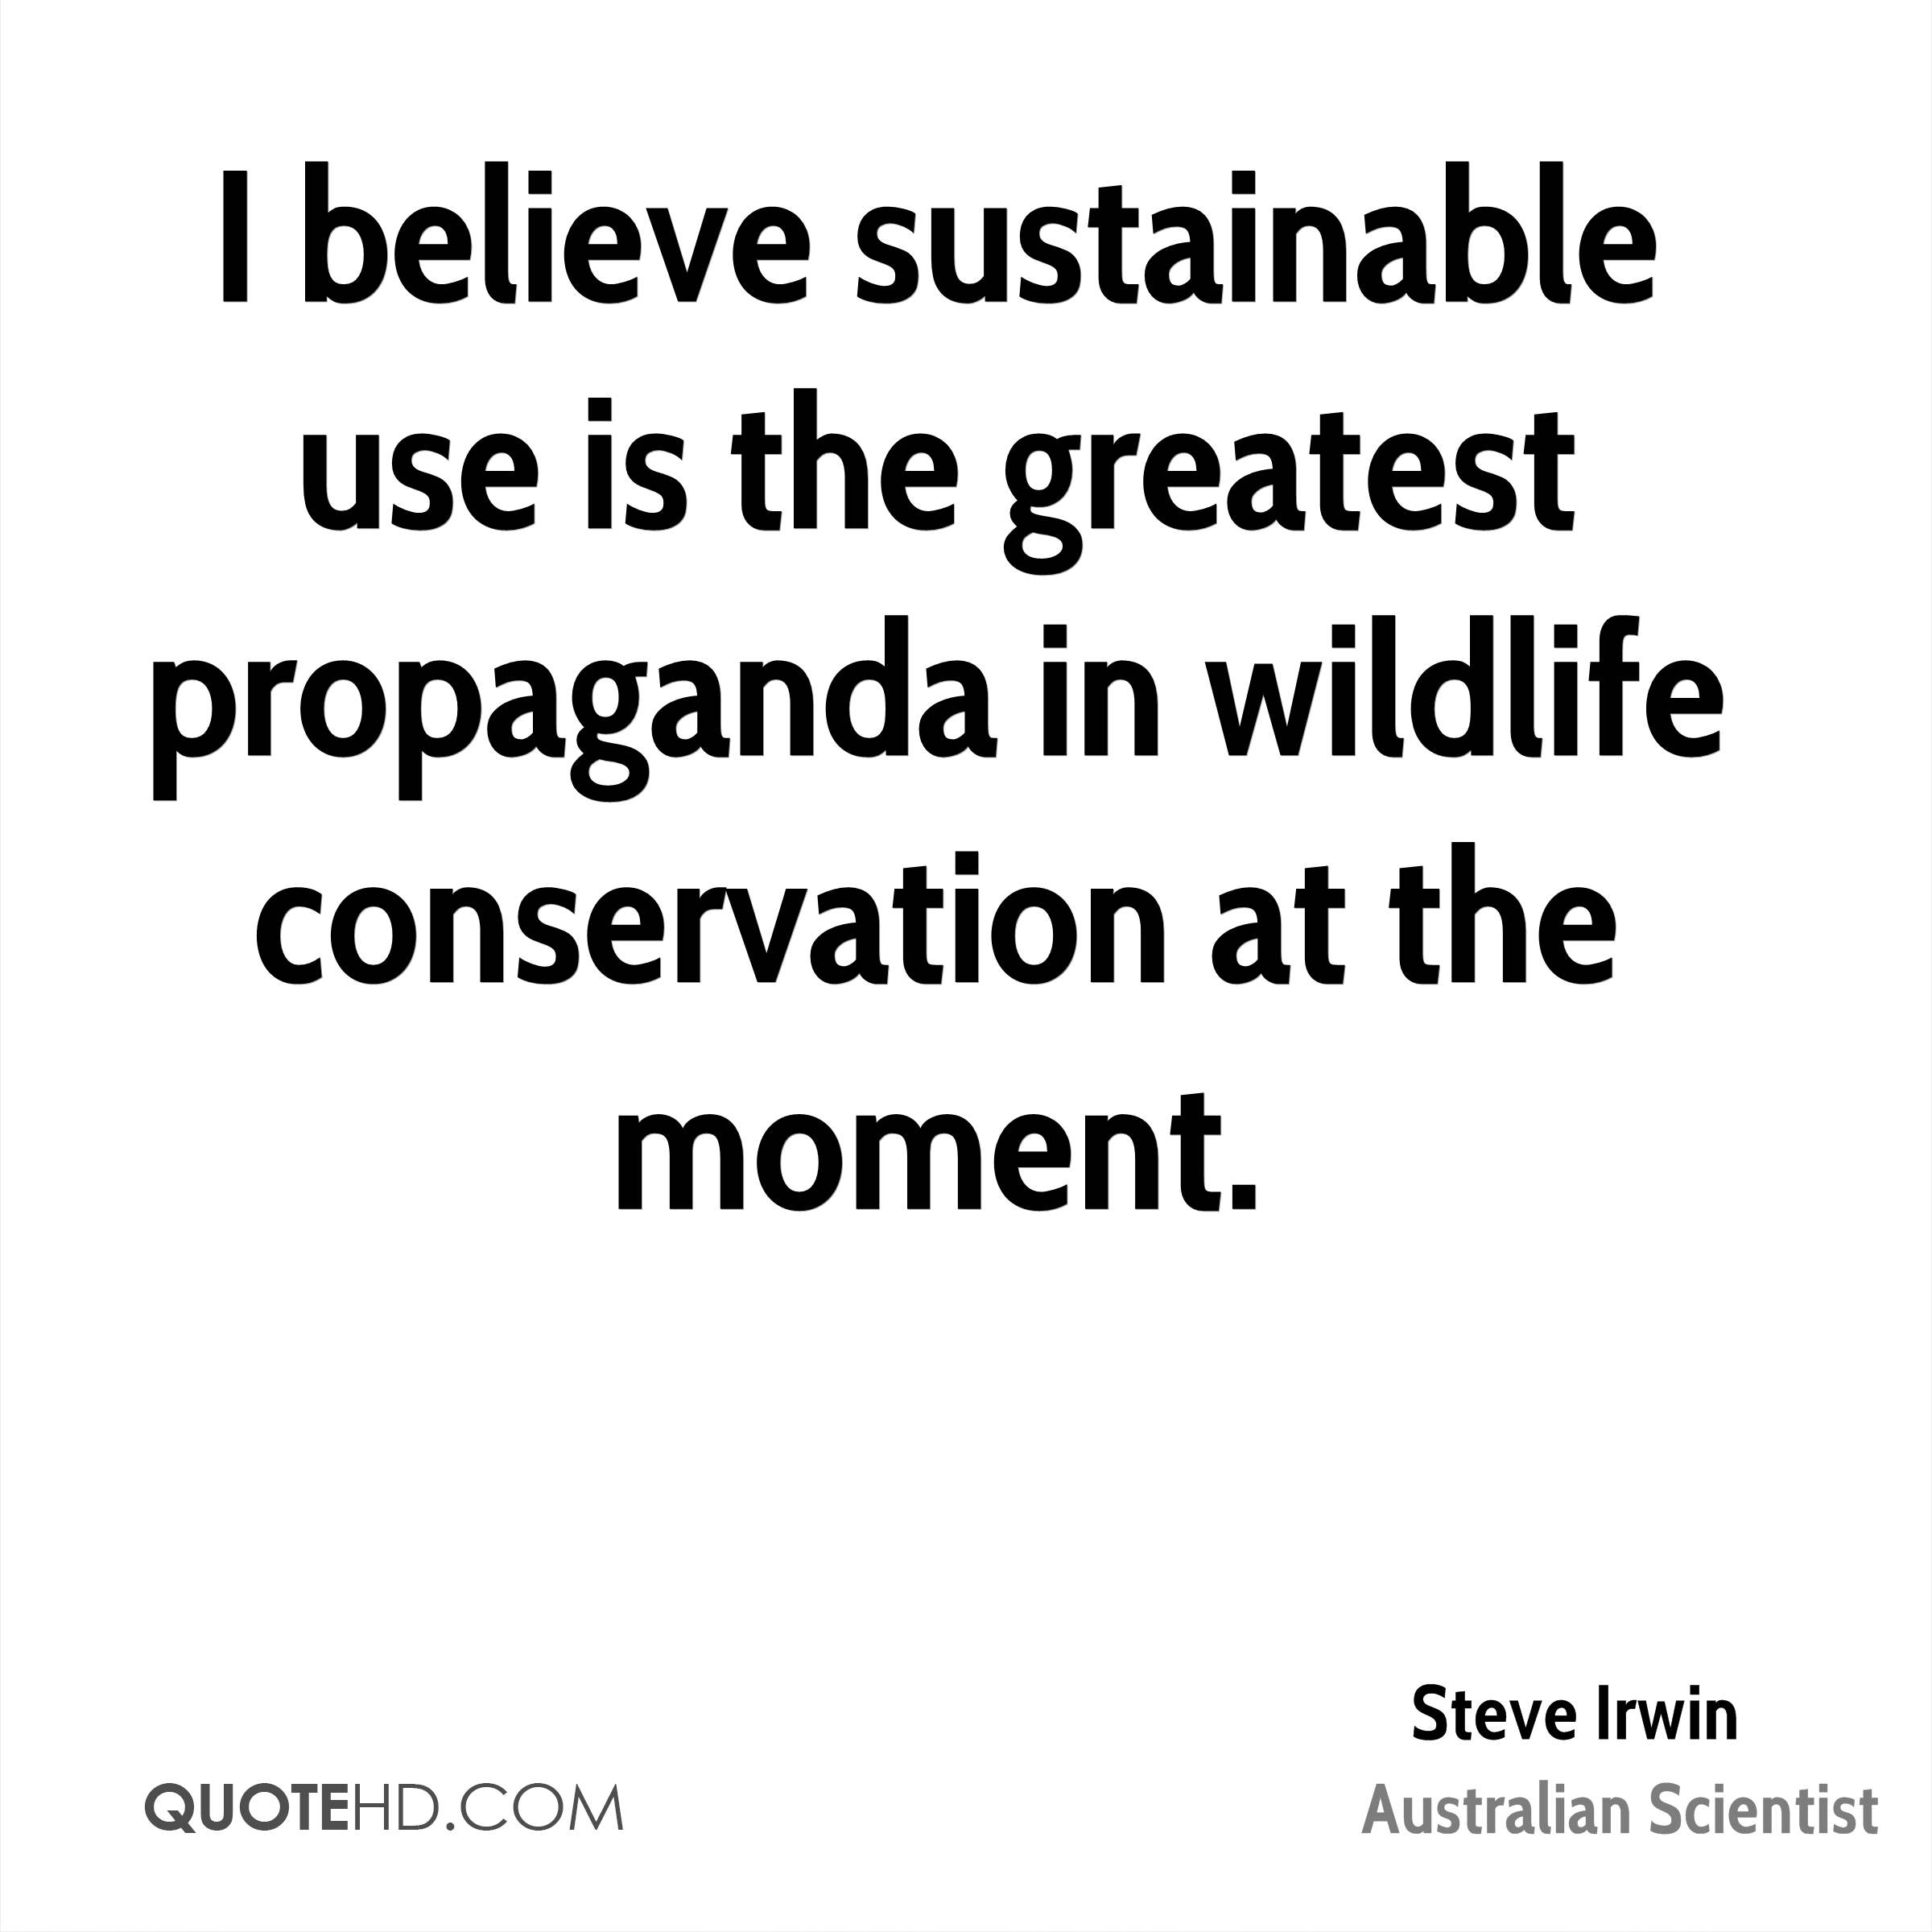 I believe sustainable use is the greatest propaganda in wildlife conservation at the moment.